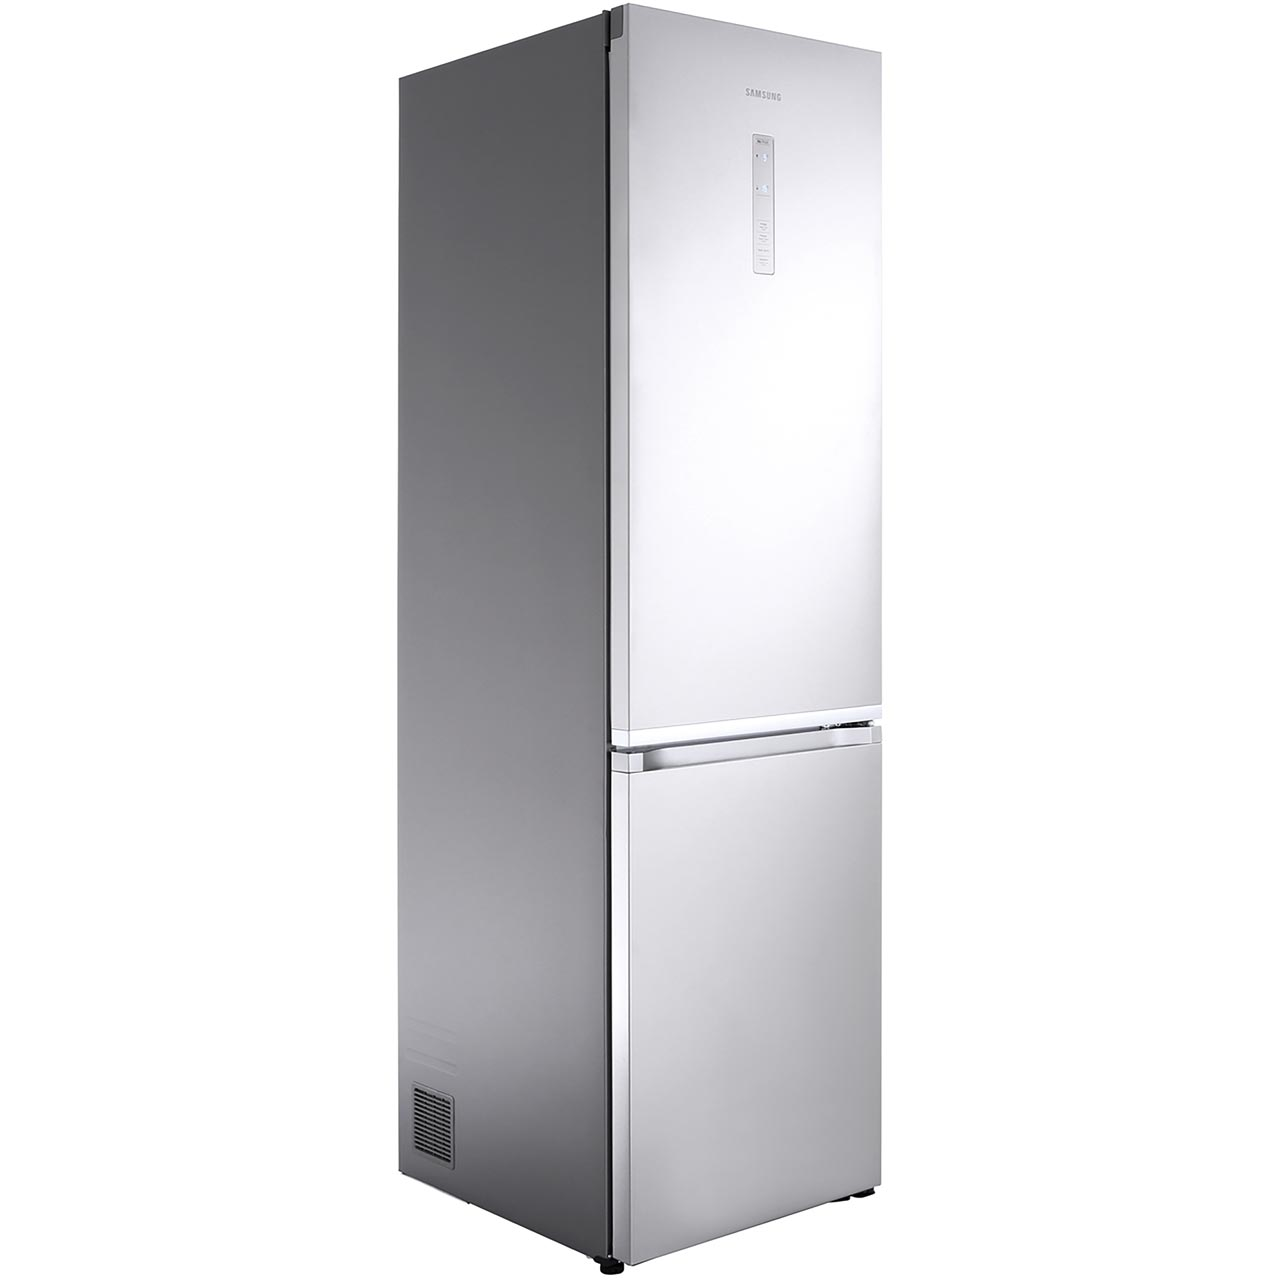 Samsung RB Combi Range RB41J7255SR Free Standing Fridge Freezer Frost Free in Stainless Steel